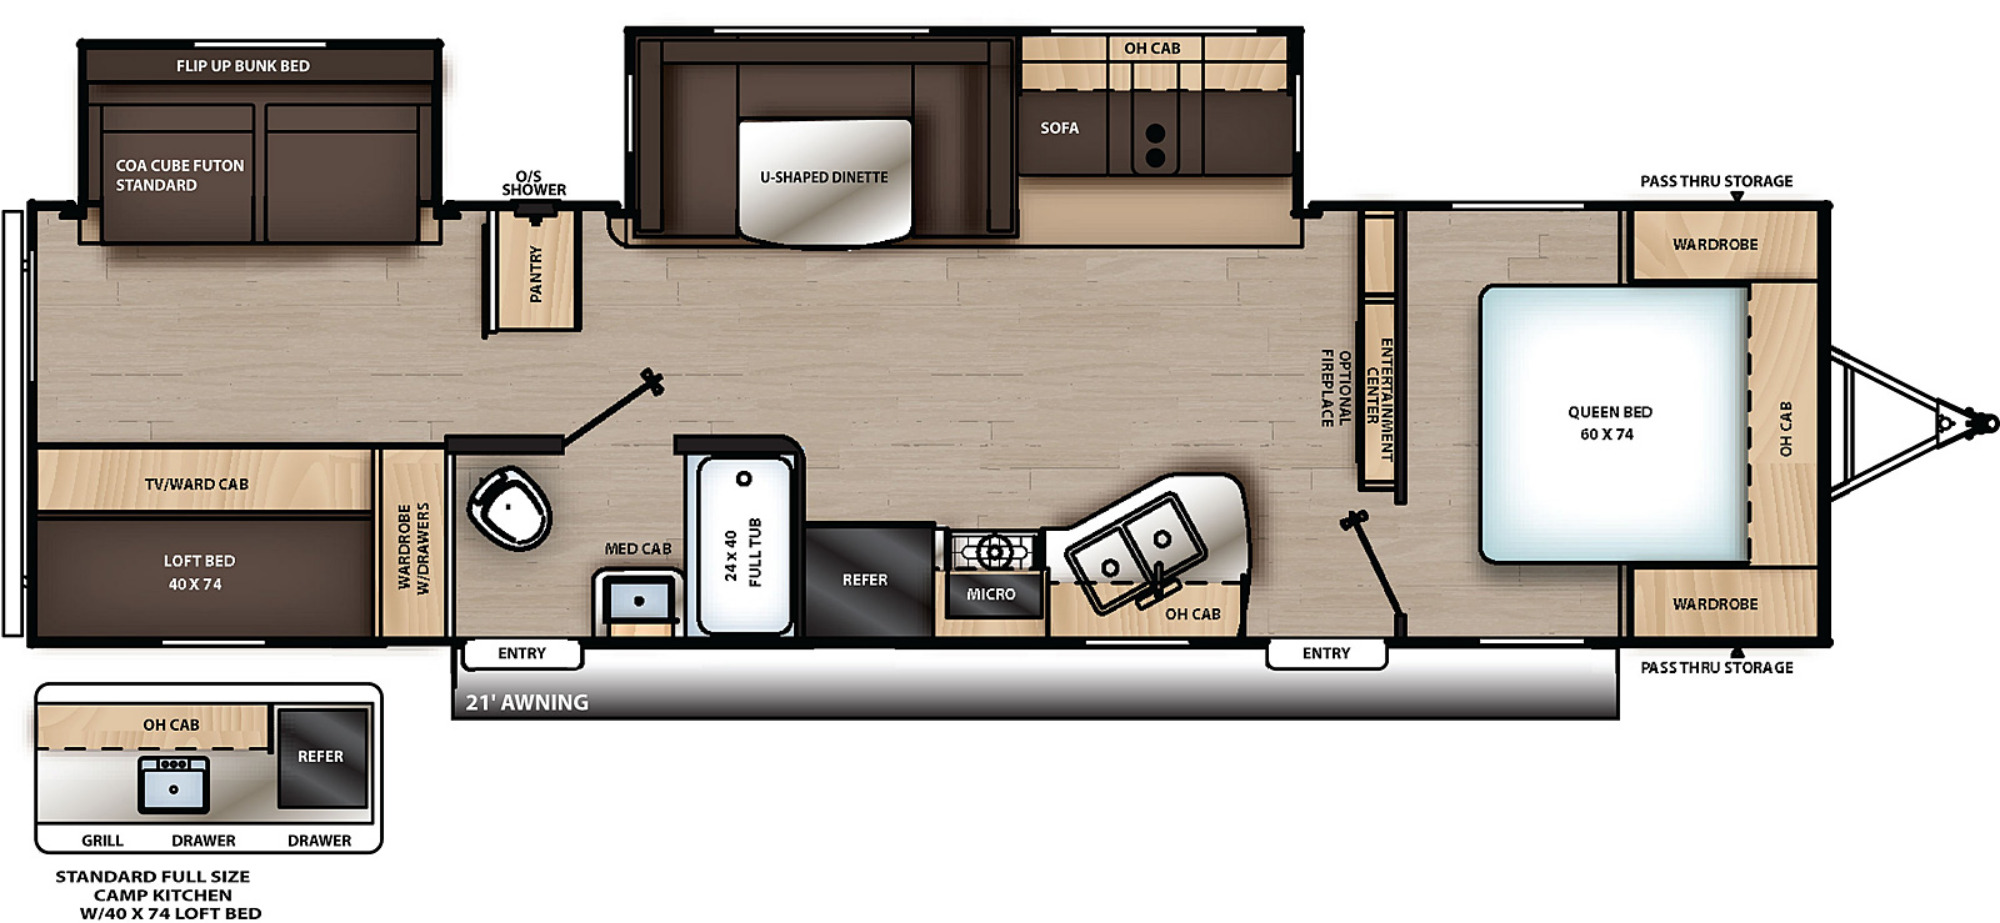 Floor Plan image for '2019 COACHMEN CATALINA LEGACY 323BHDSCK'